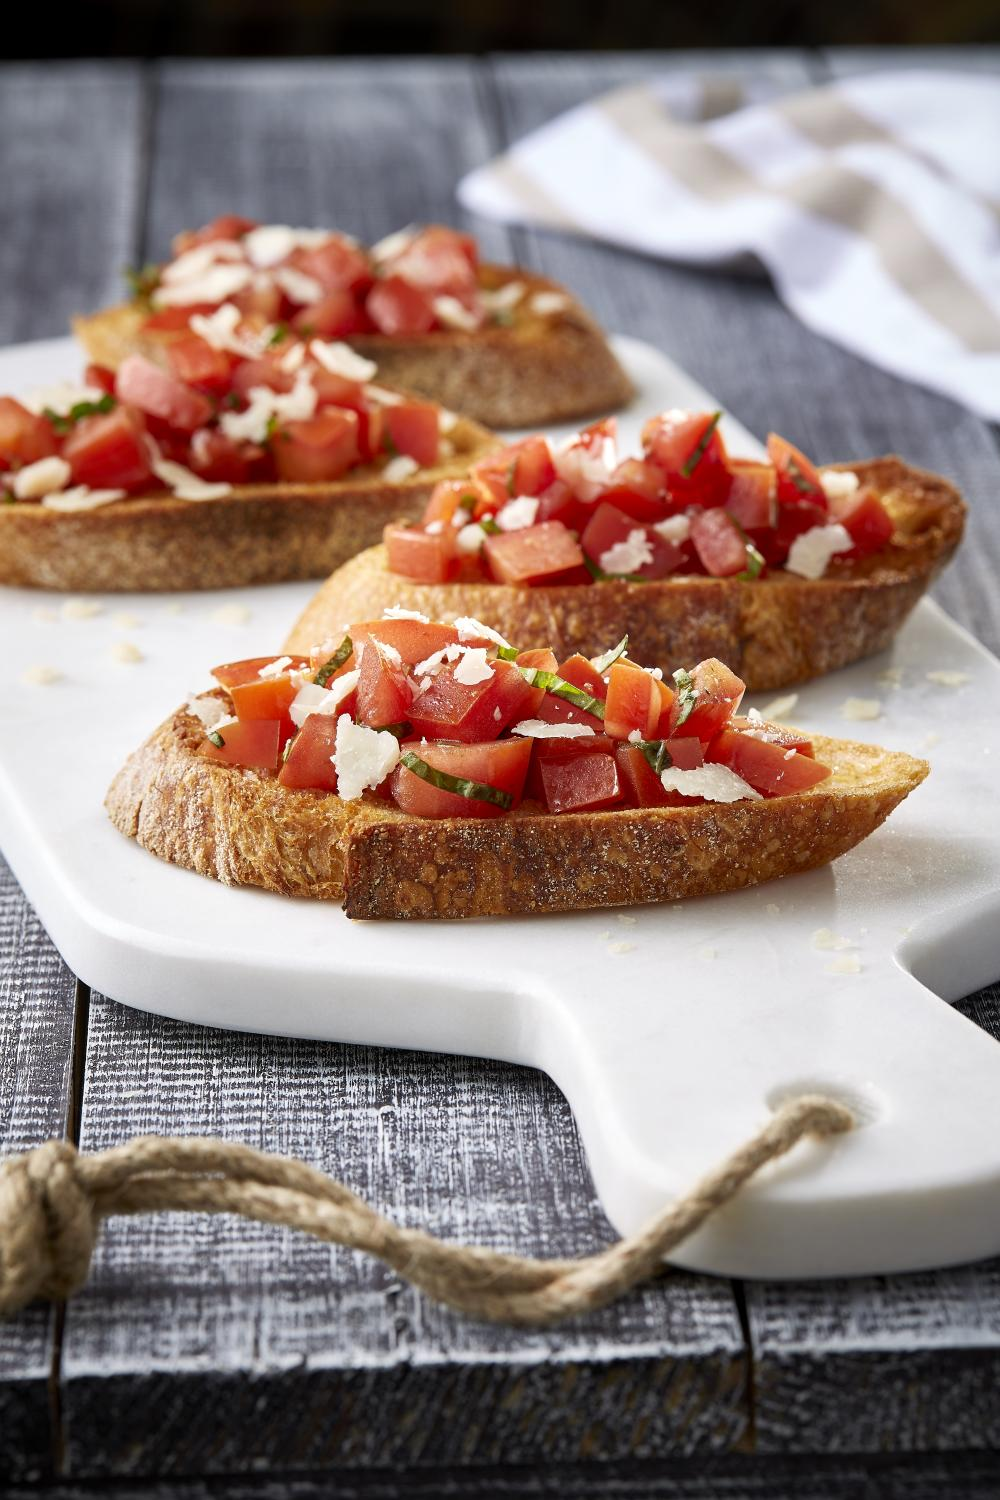 We can't live on bread alone … but try this bruschetta